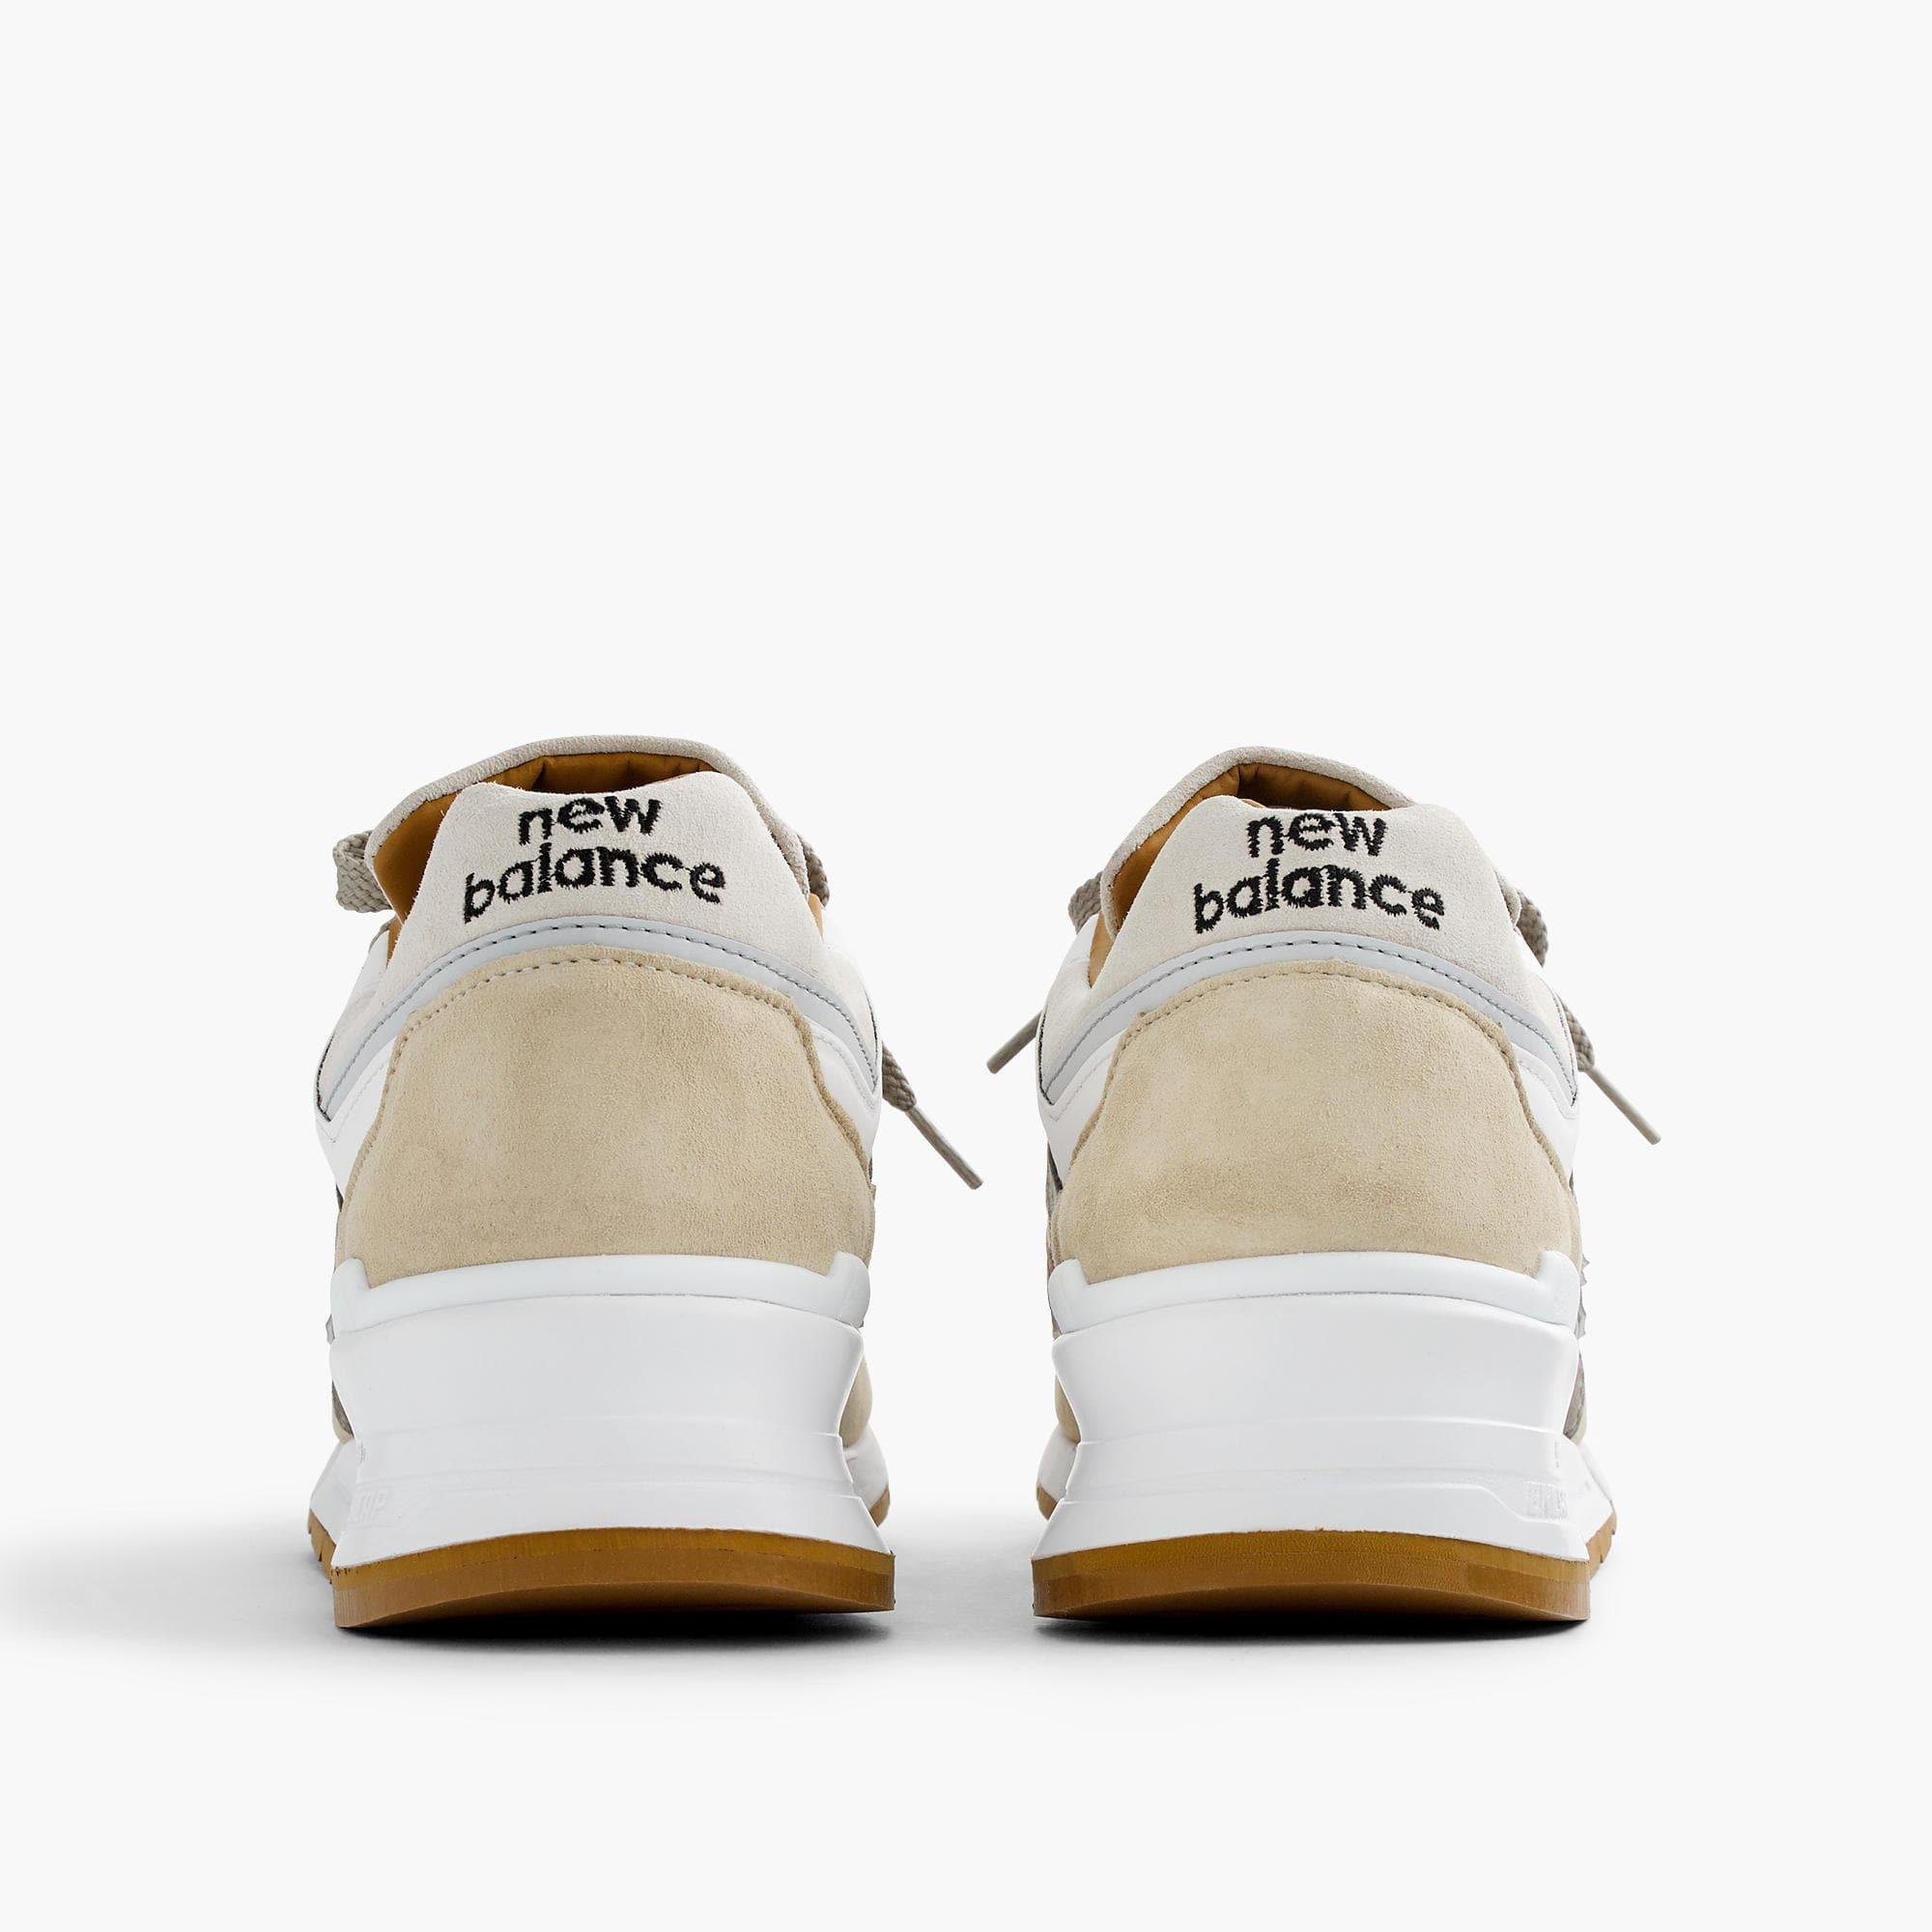 3c62b78d76510 J.Crew Limited-edition New Balance 997 Cortado Sneakers for Men - Lyst